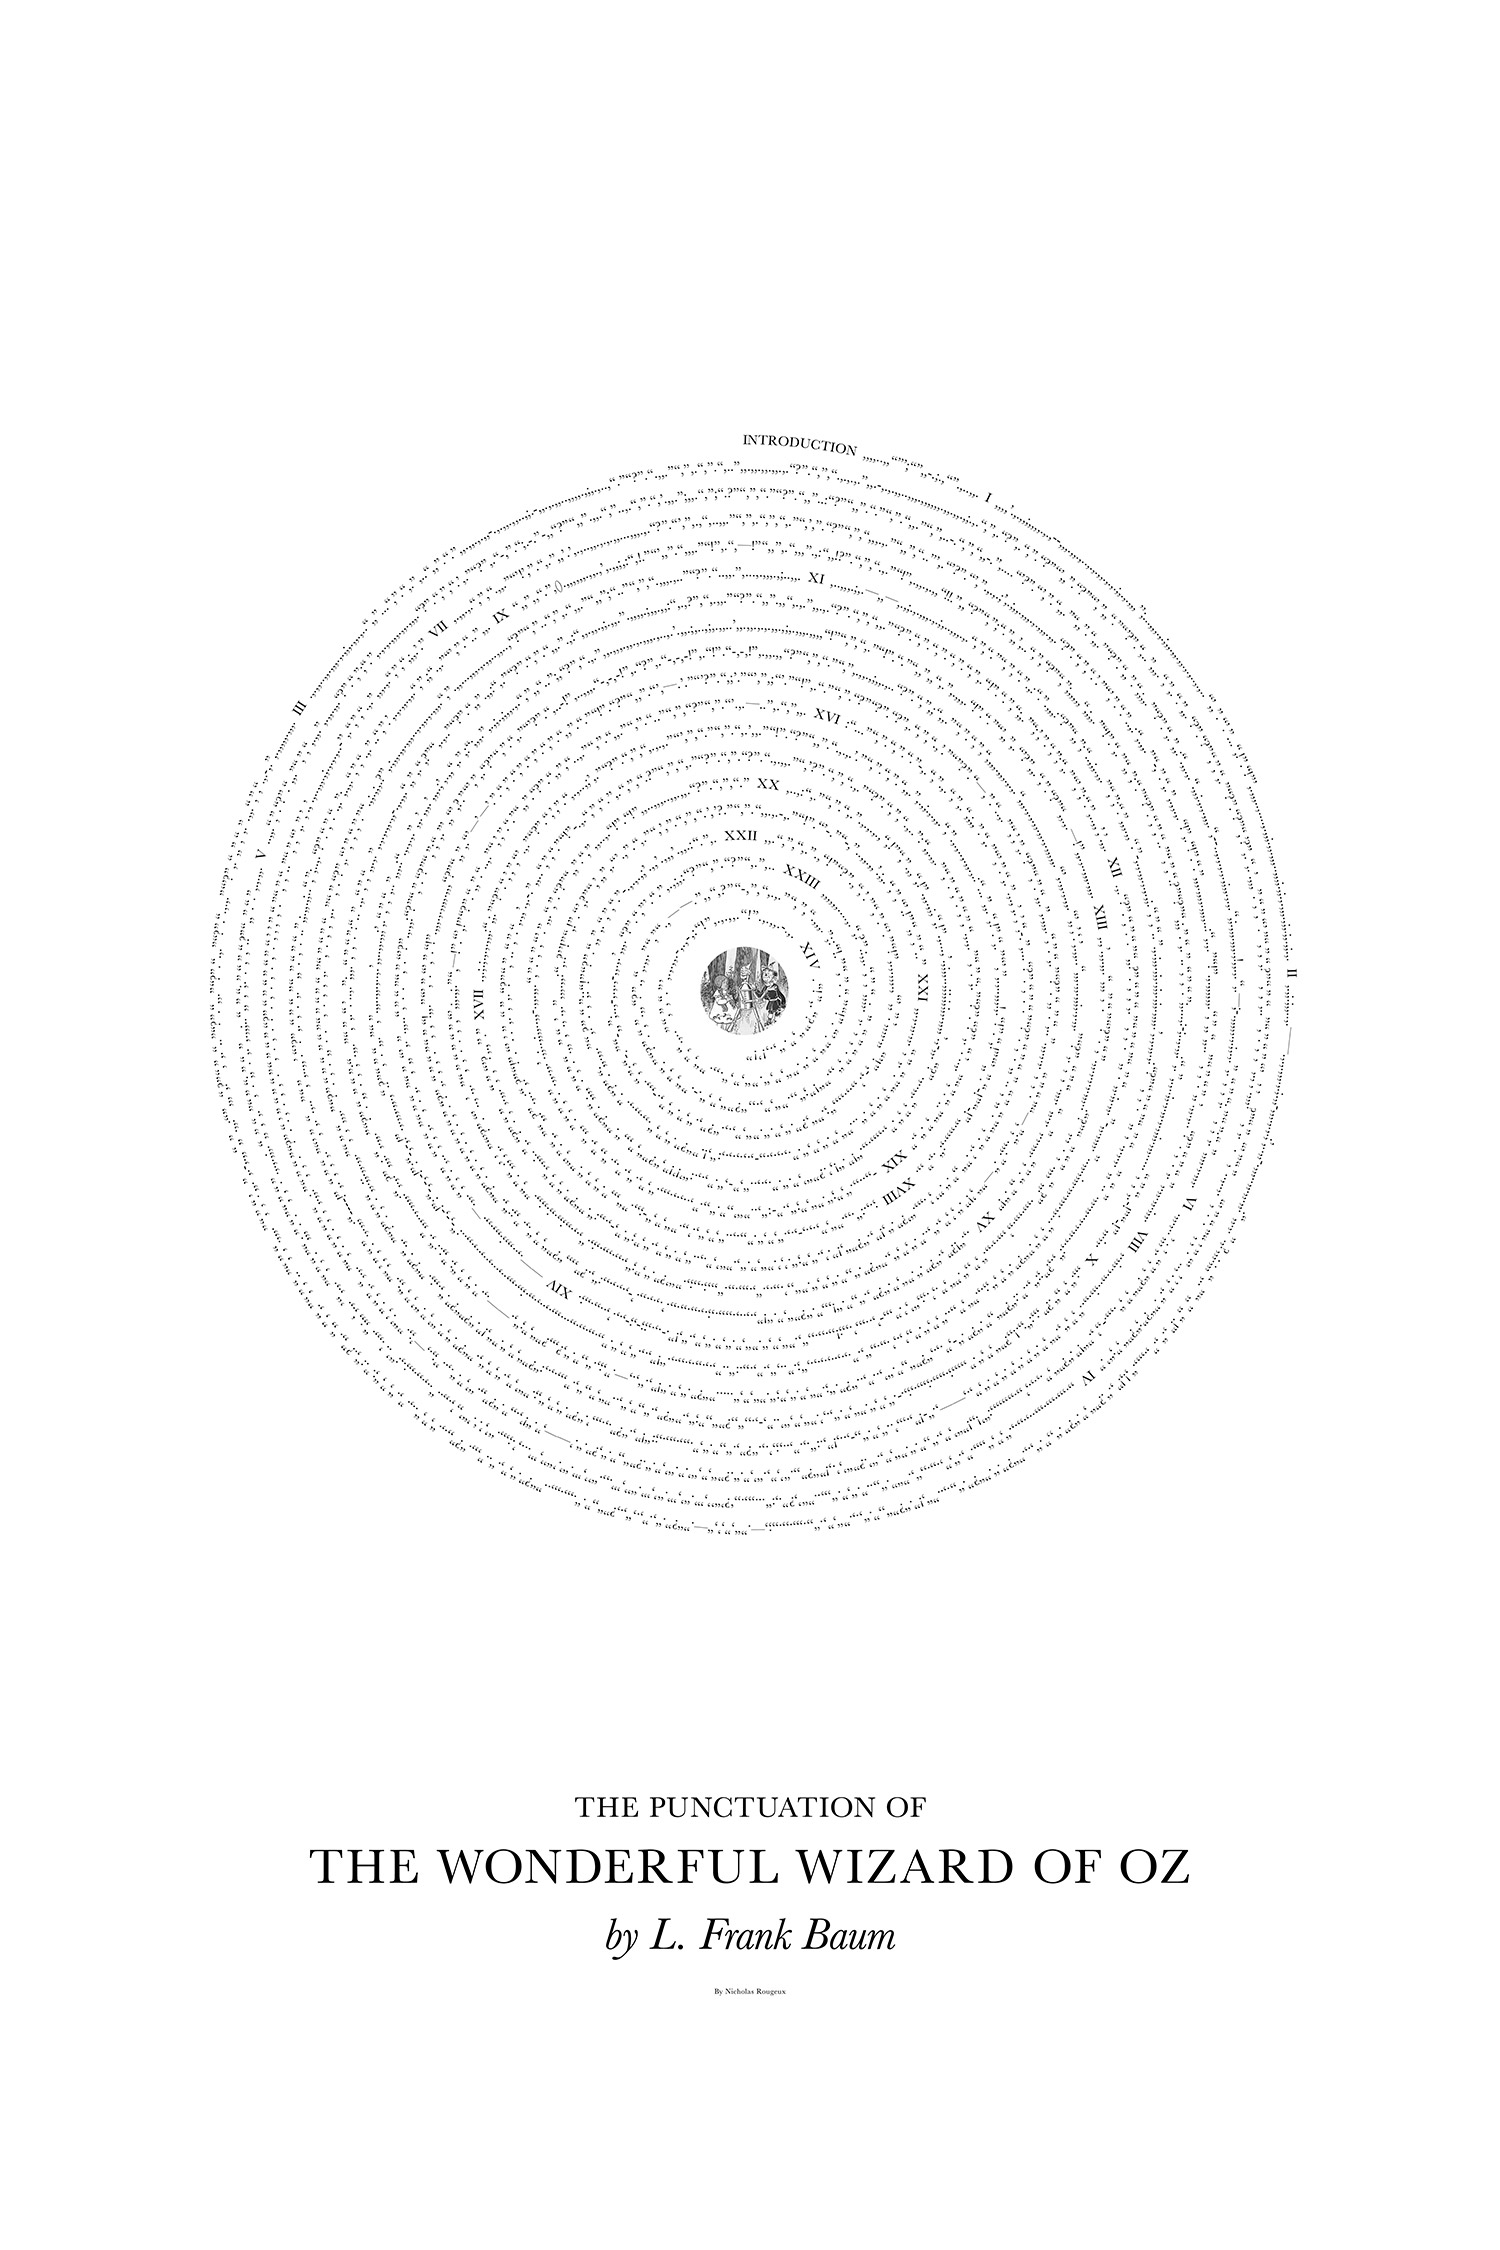 See Classic Novels Visualized with No Words and